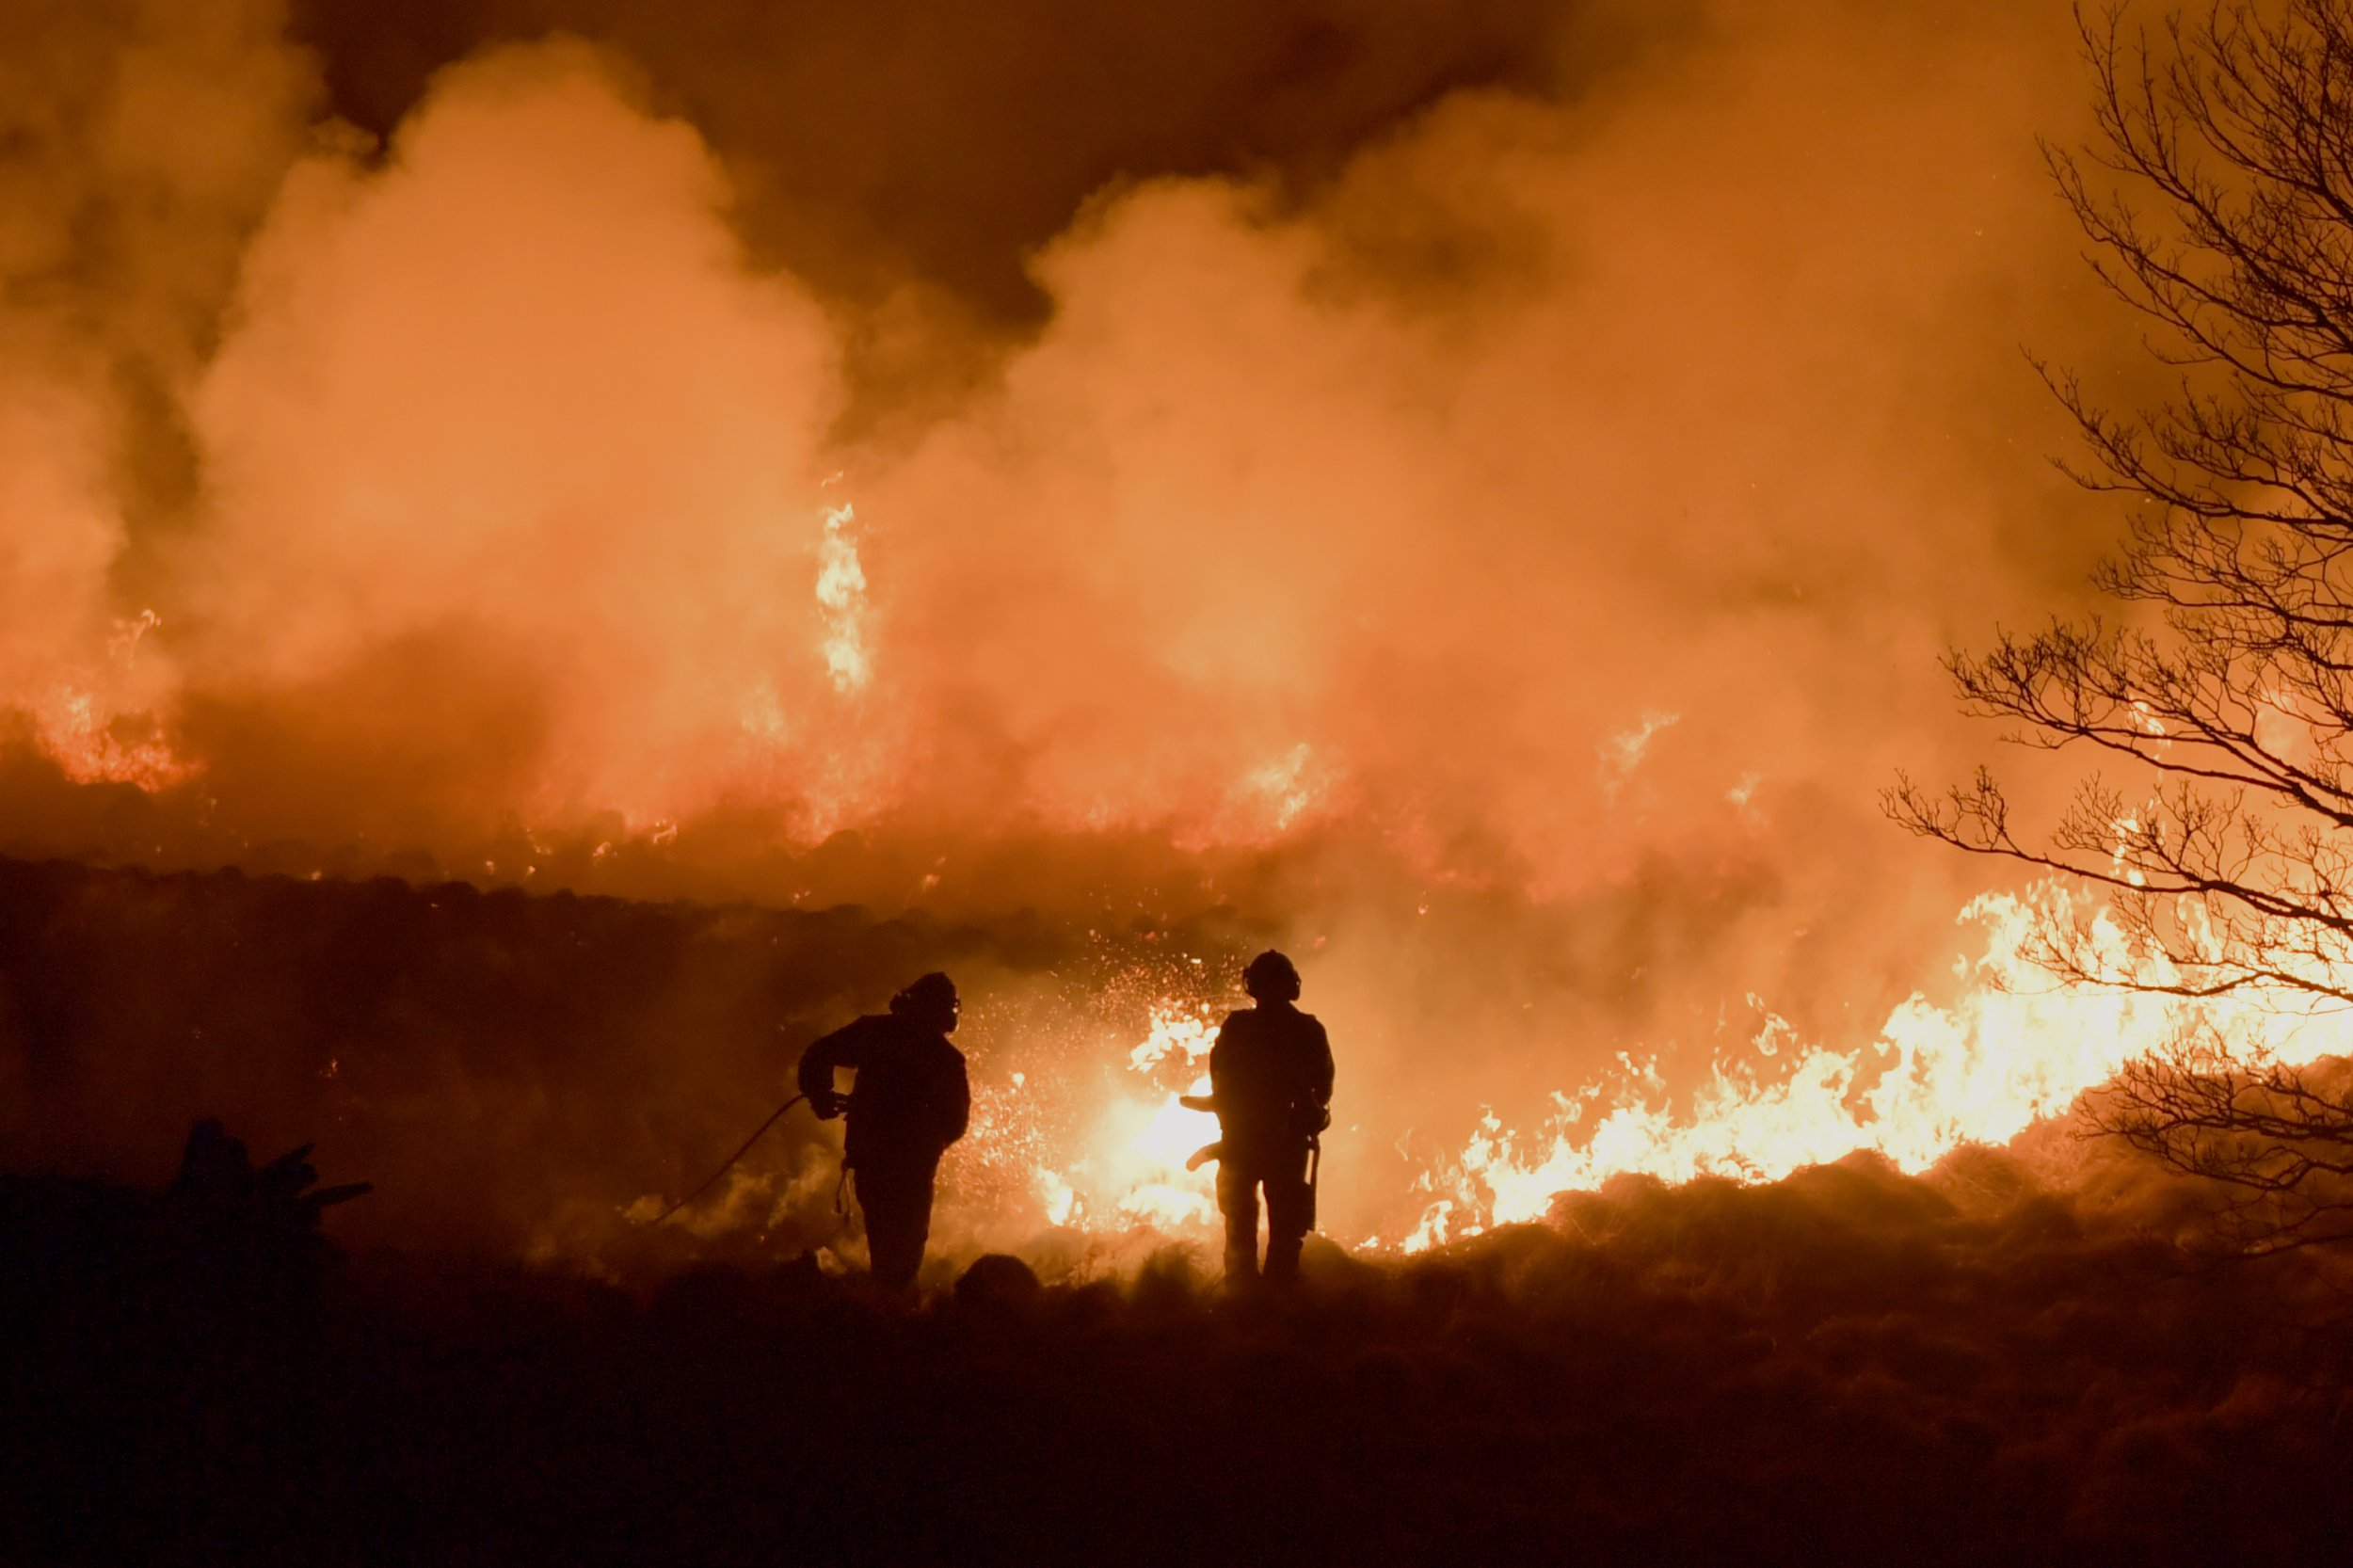 Firefighters tackle a large wildfire on Saddleworth Moor on February 26, 2019